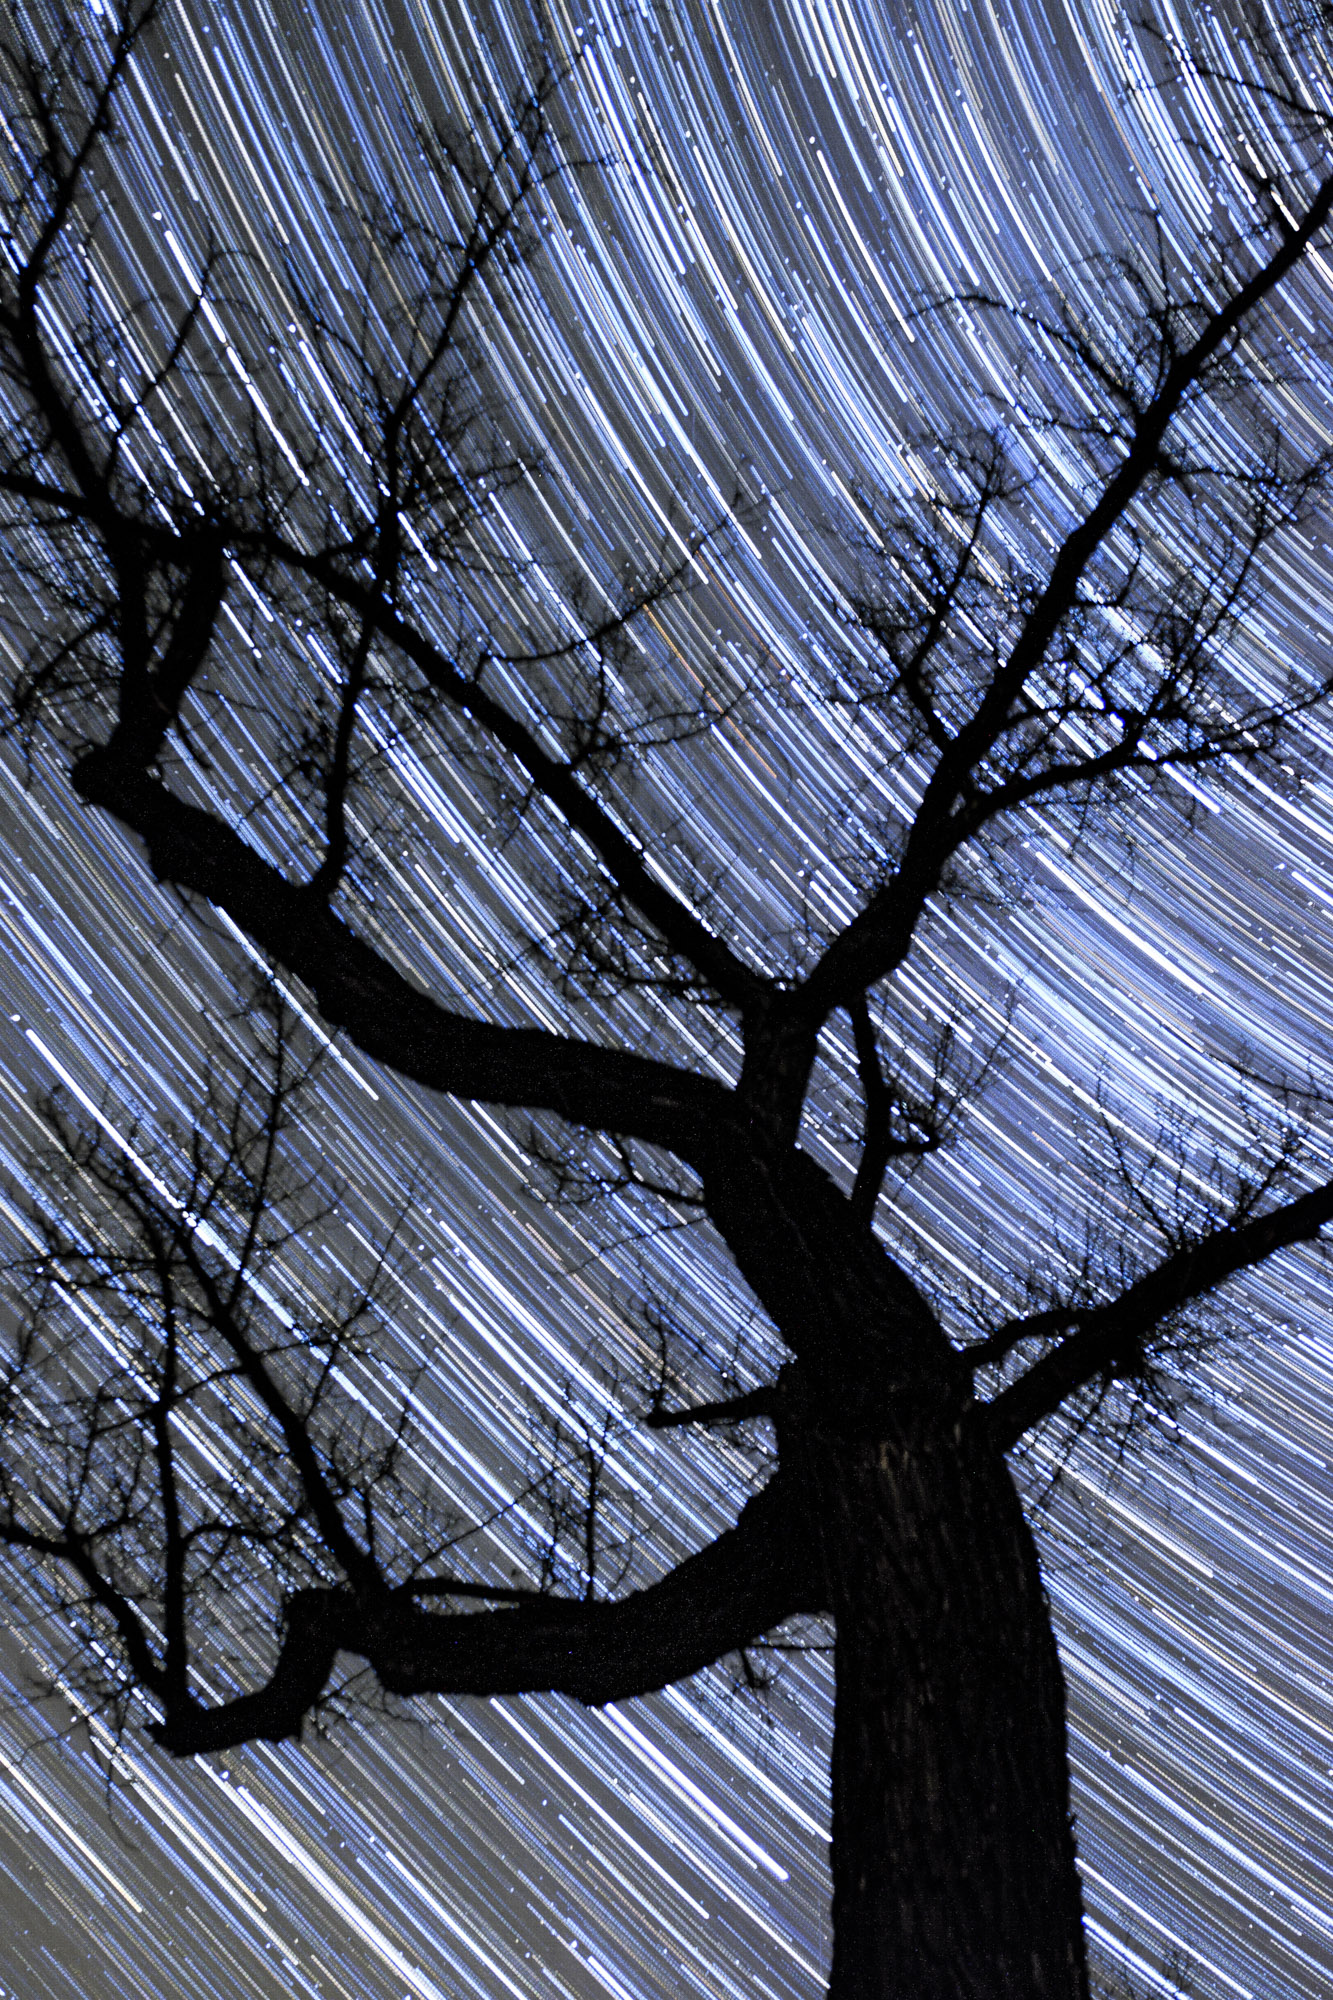 Capturing star trails while camping is so much fun!